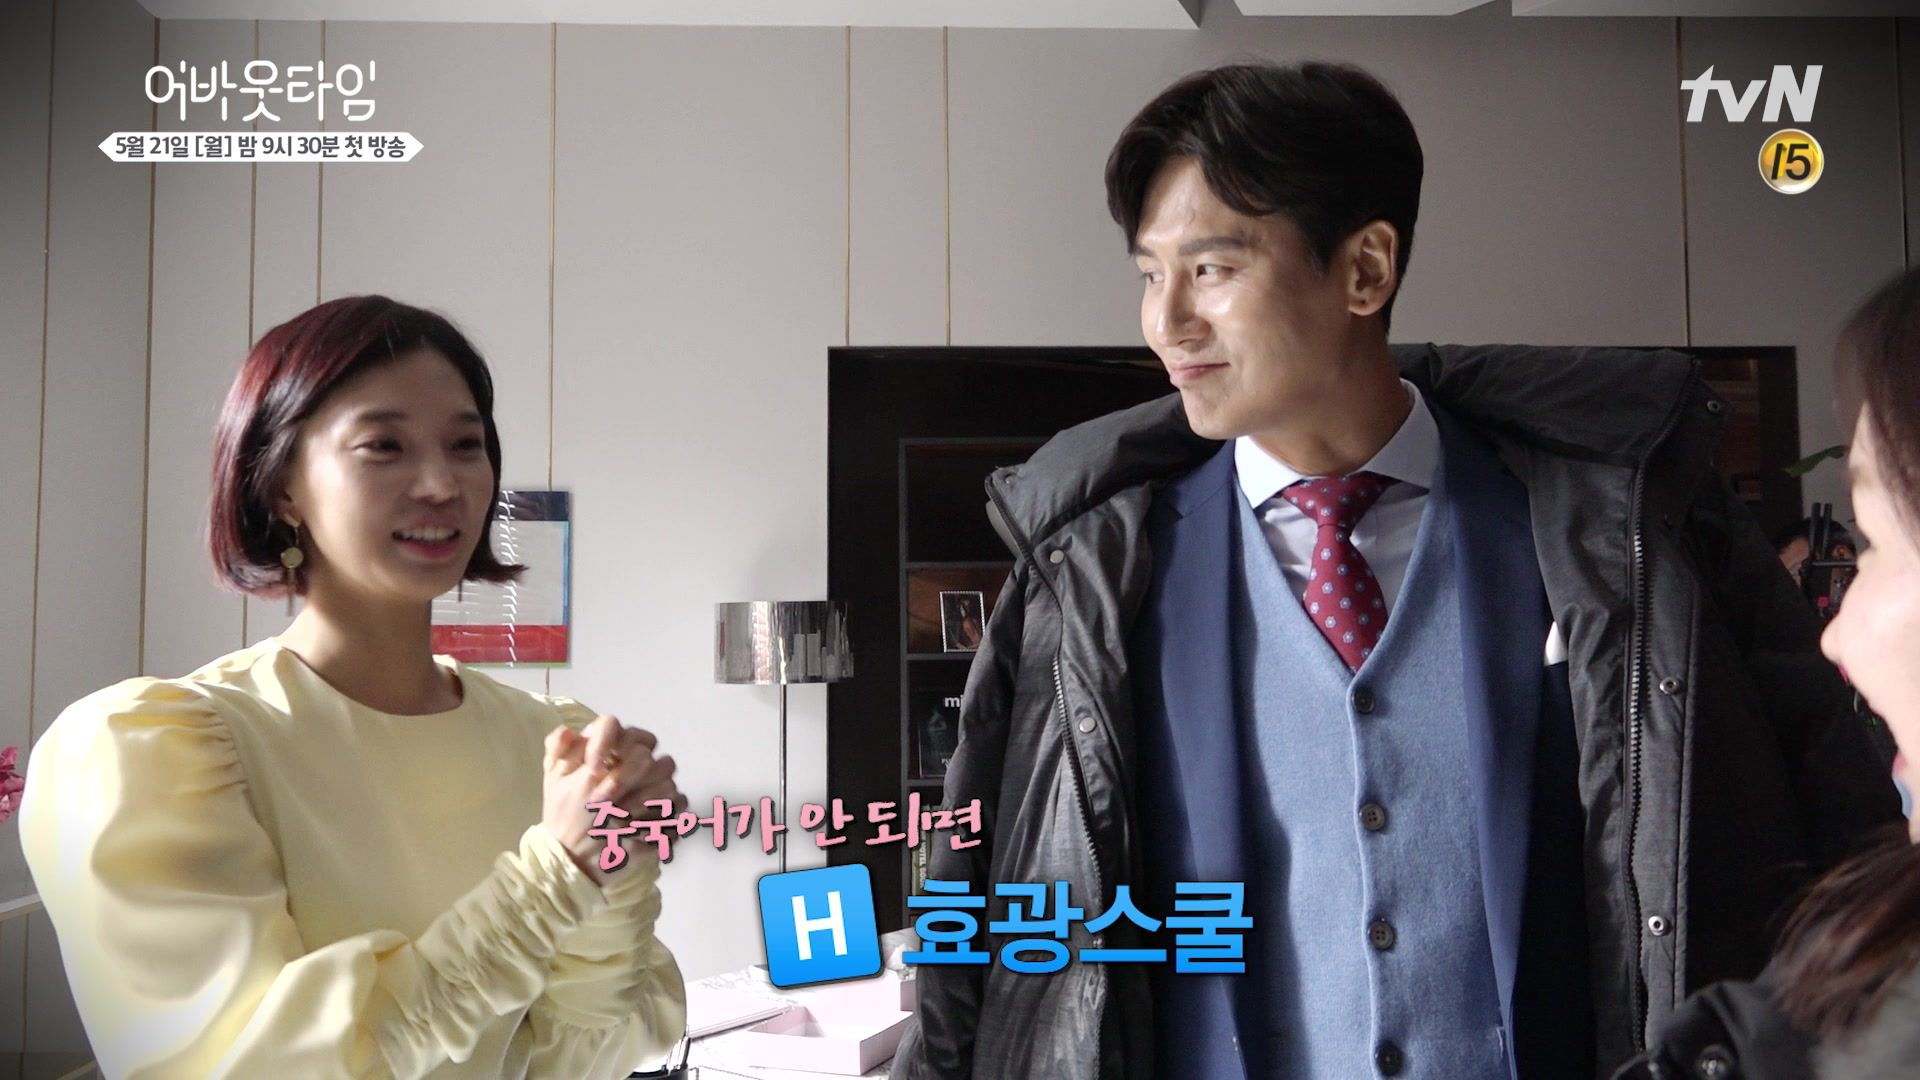 Behind The Scenes 4 Yu Xiaoguang About Time 멈추고 싶은 순간